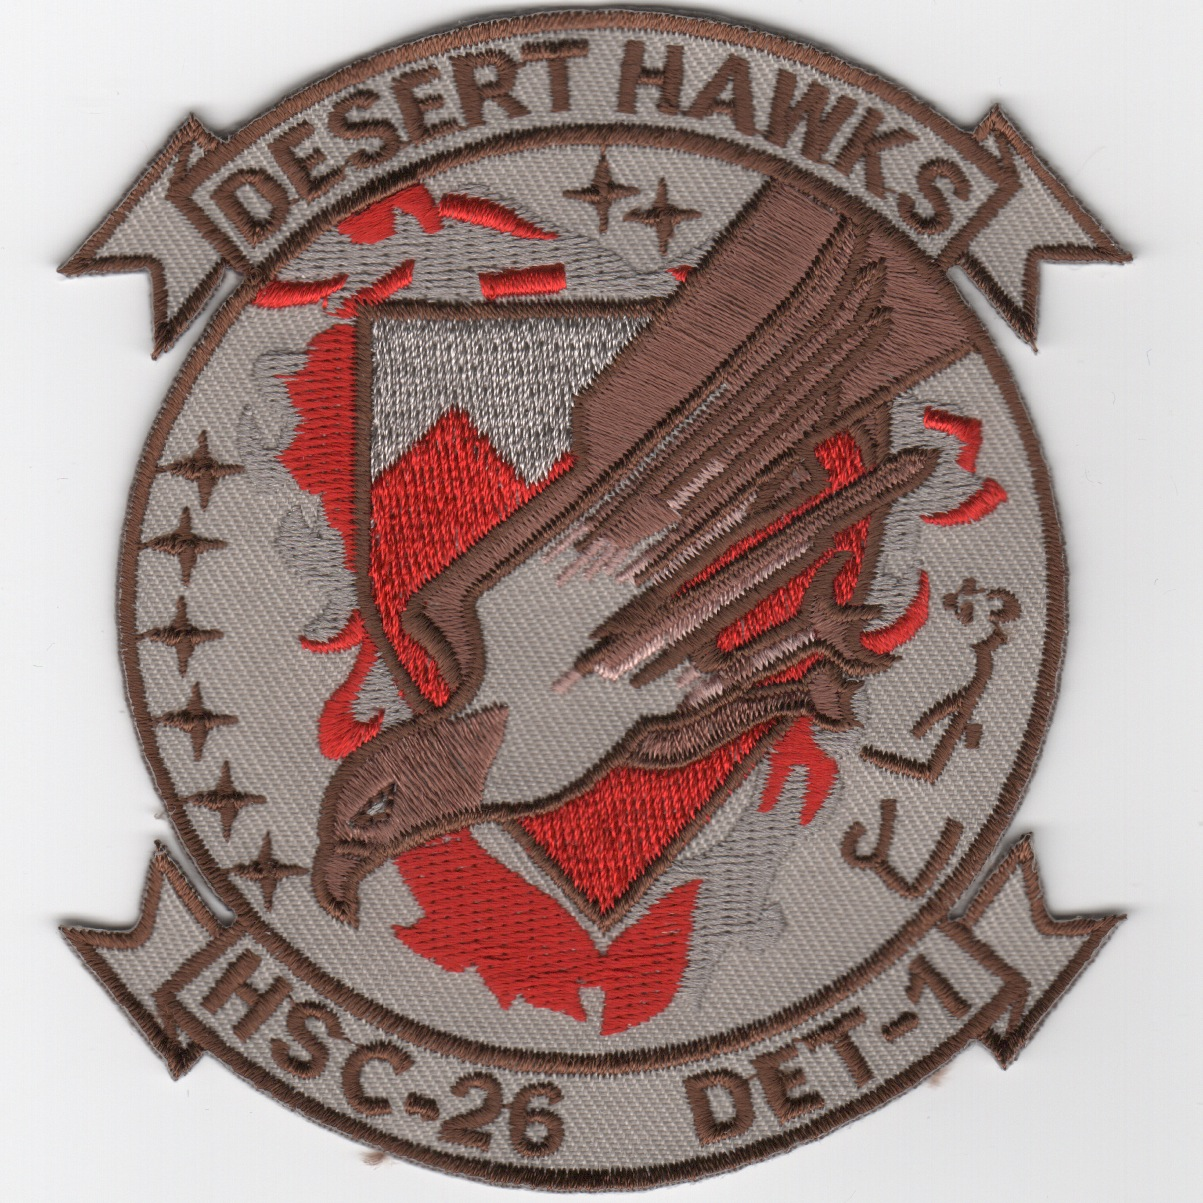 HSC-26 Det-1 'DESERT HAWKS' Patch (Des/Red)